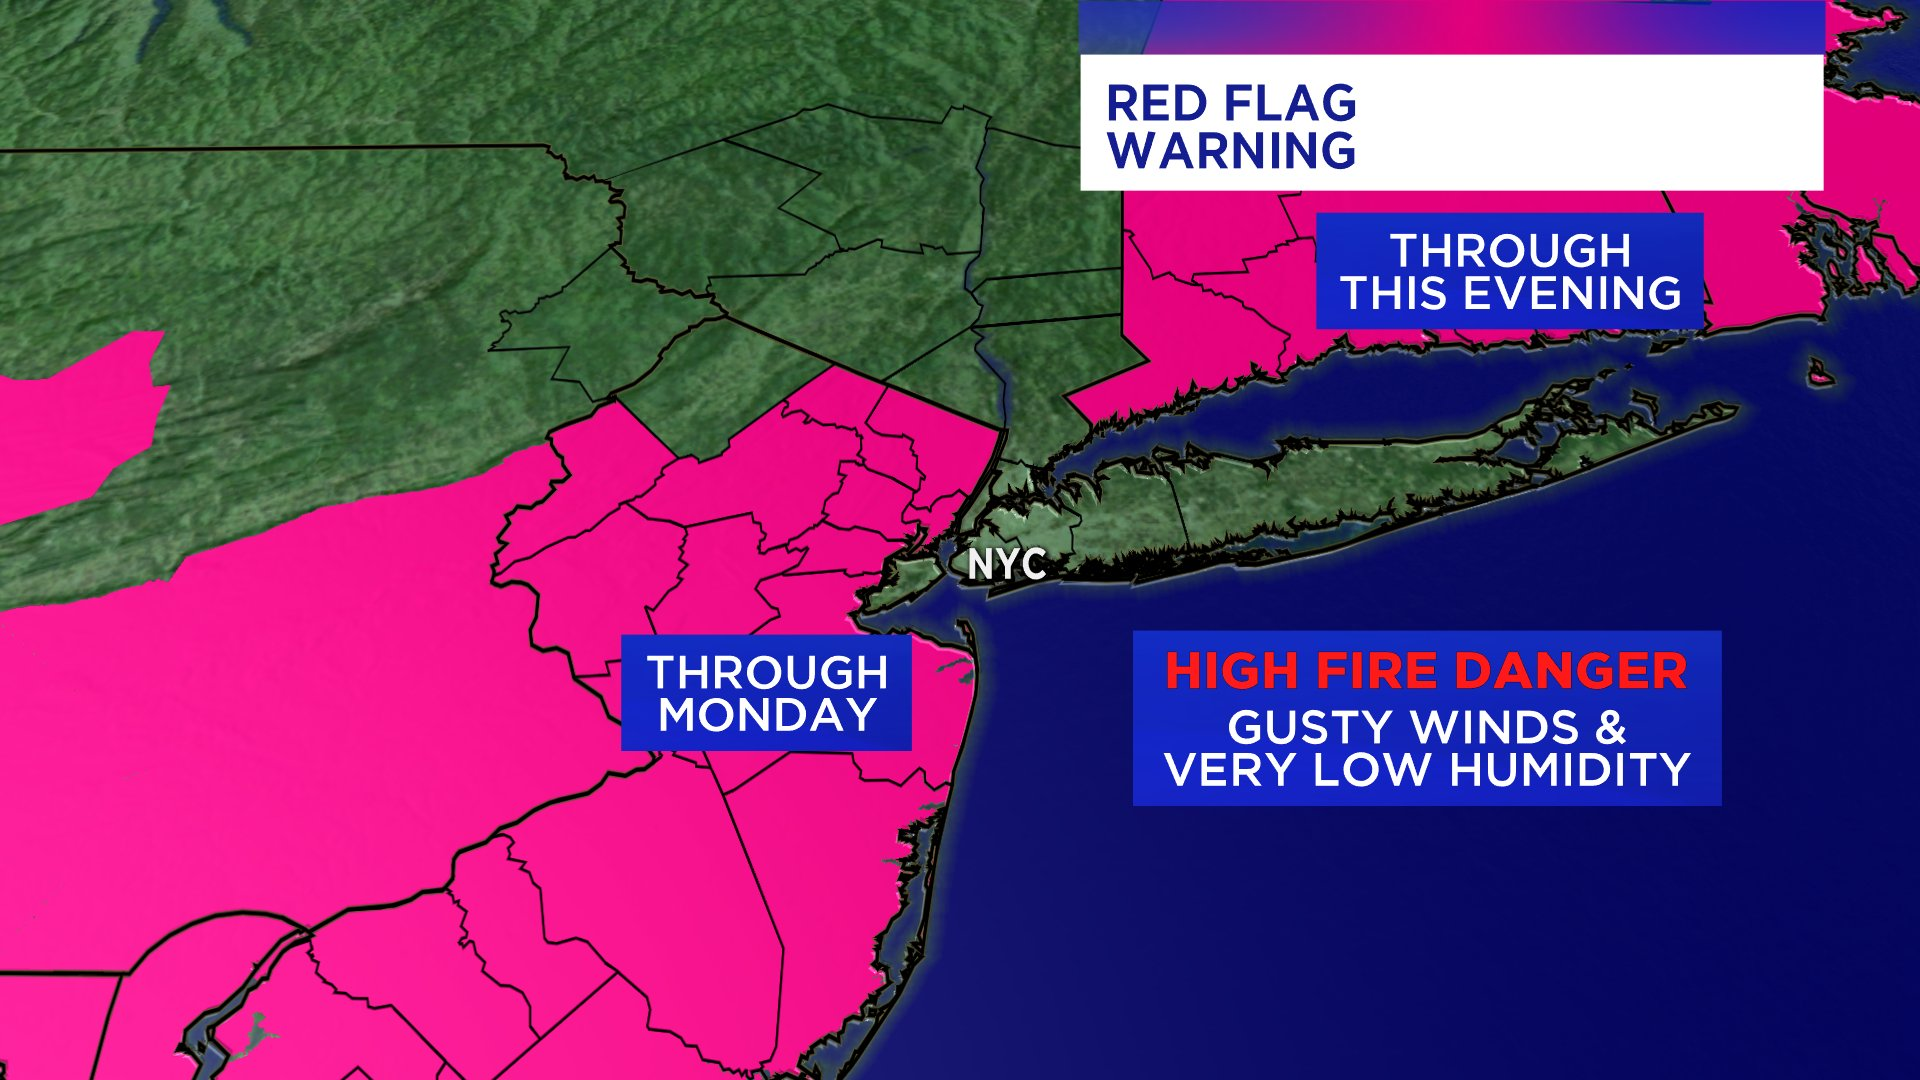 A map shows areas under a red flag warning in New Jersey